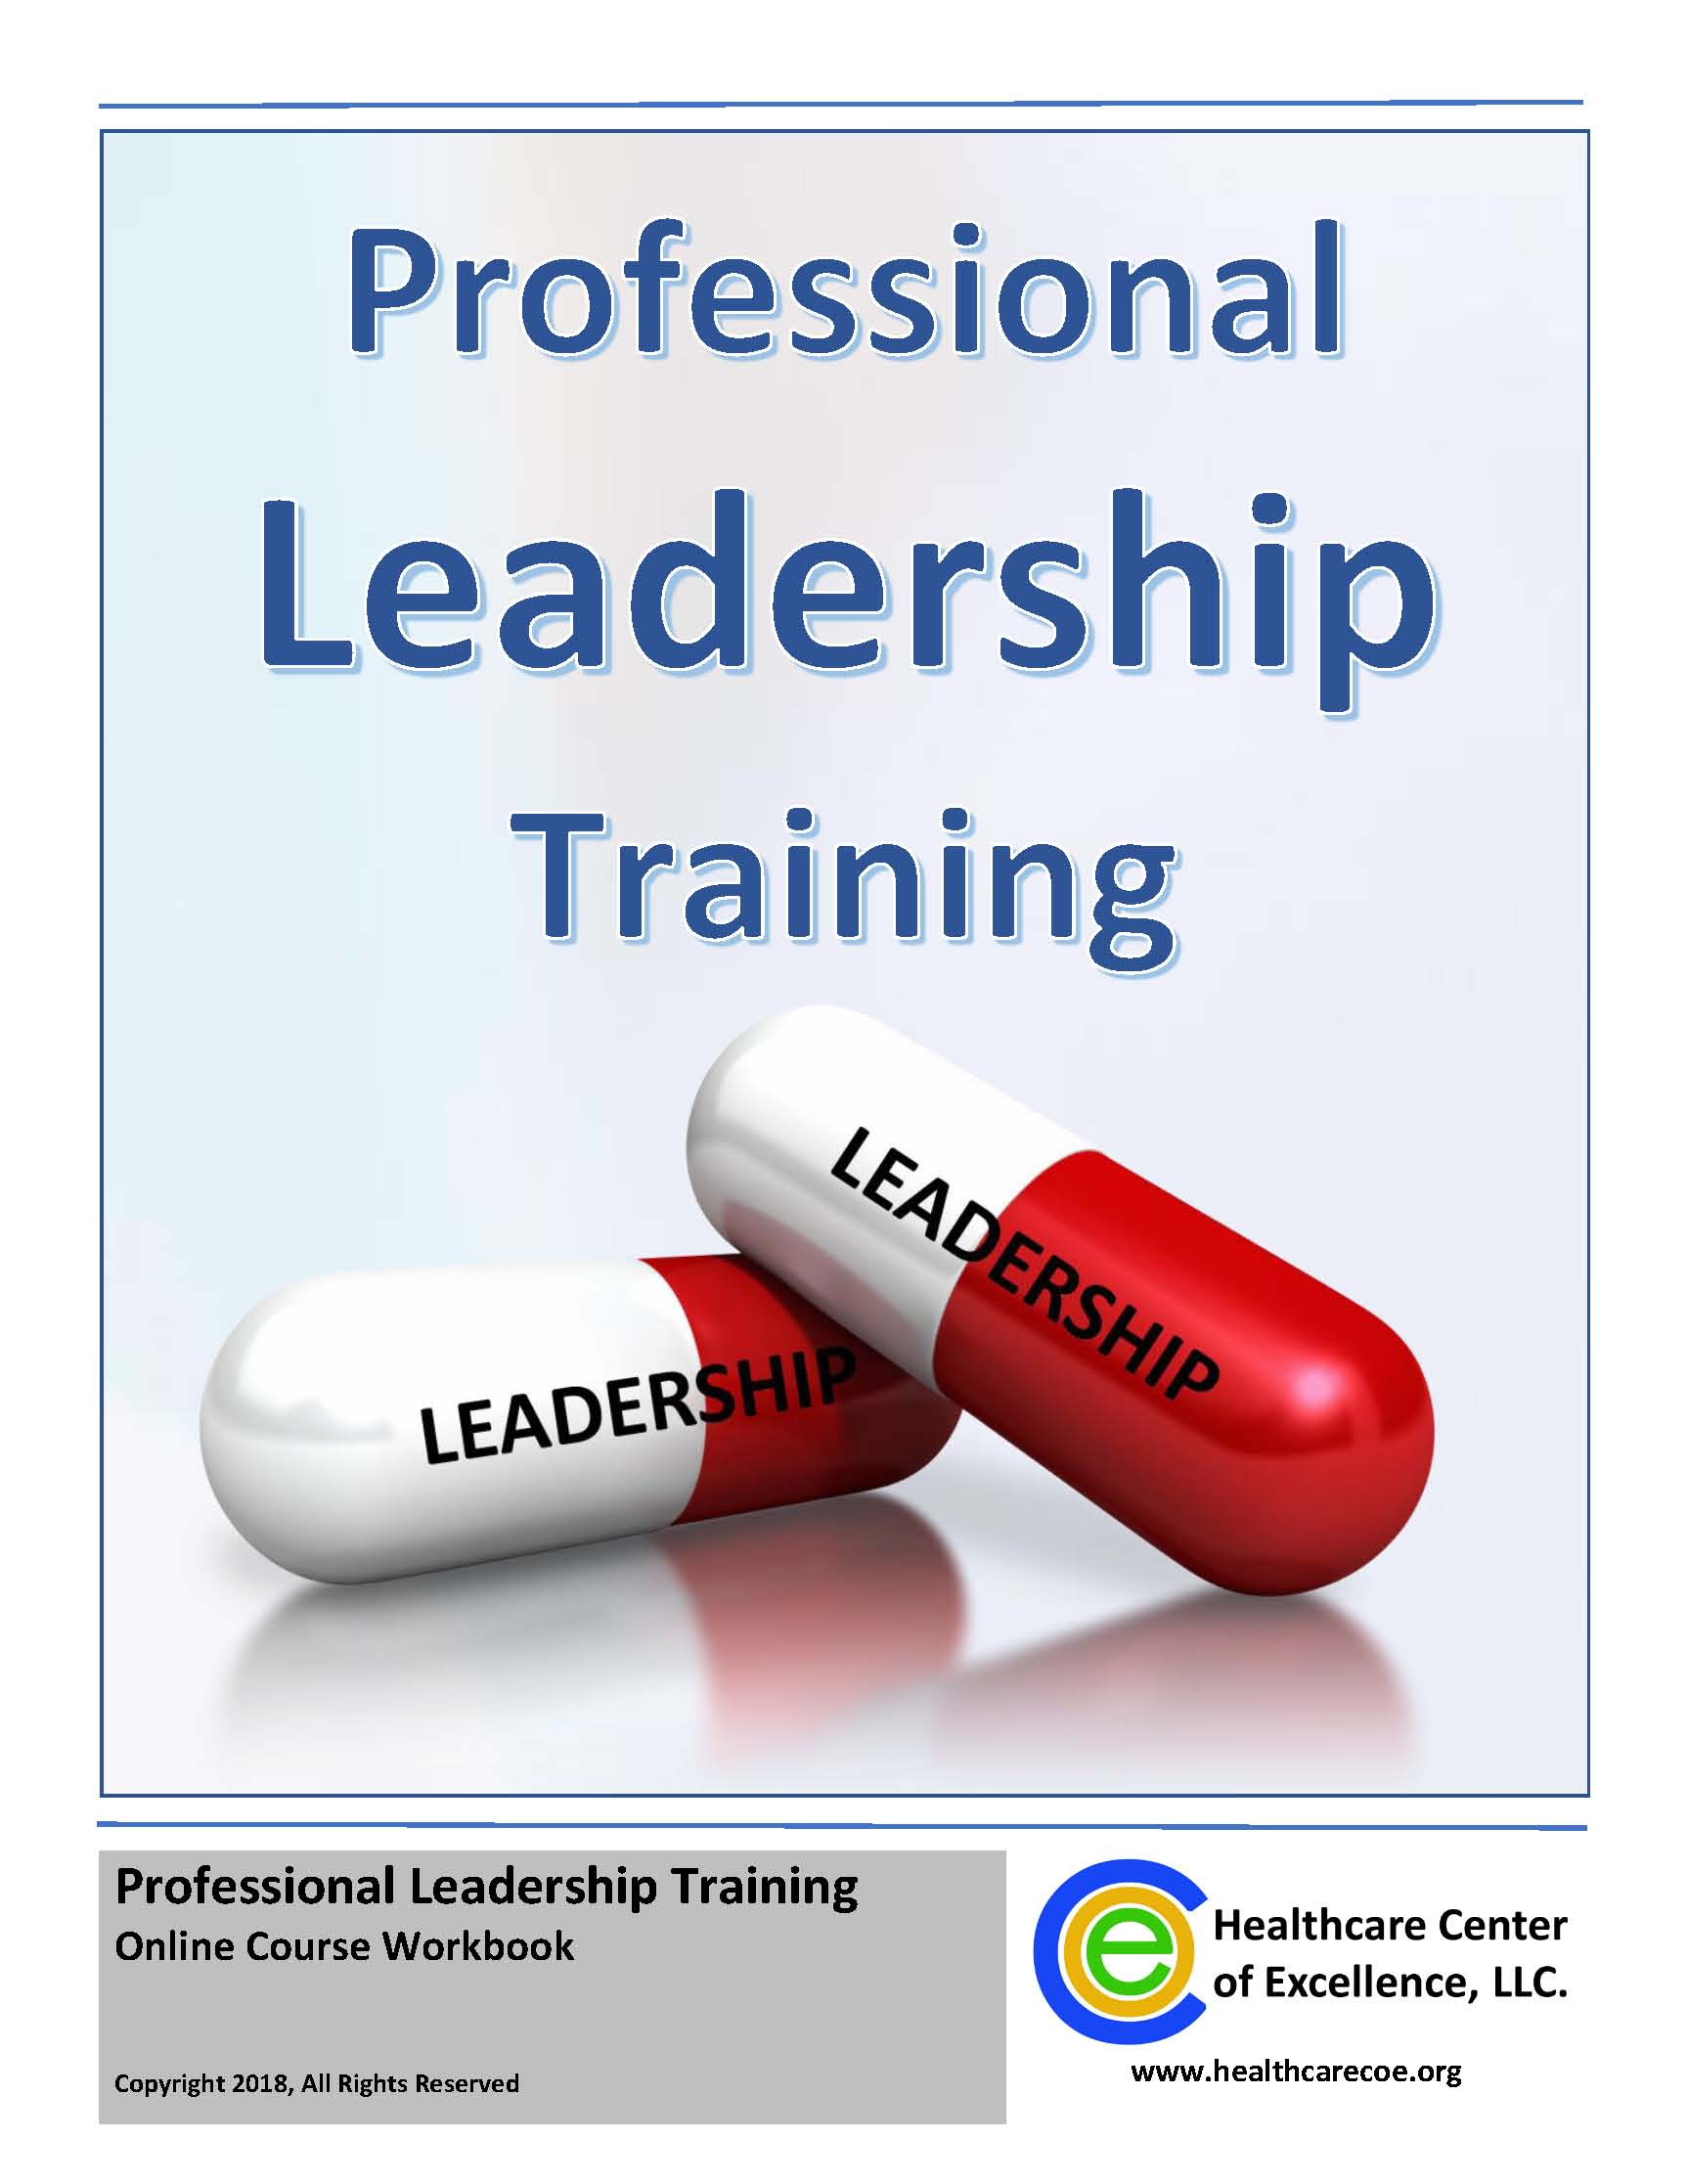 Professional Leadership Online Self-Study Program